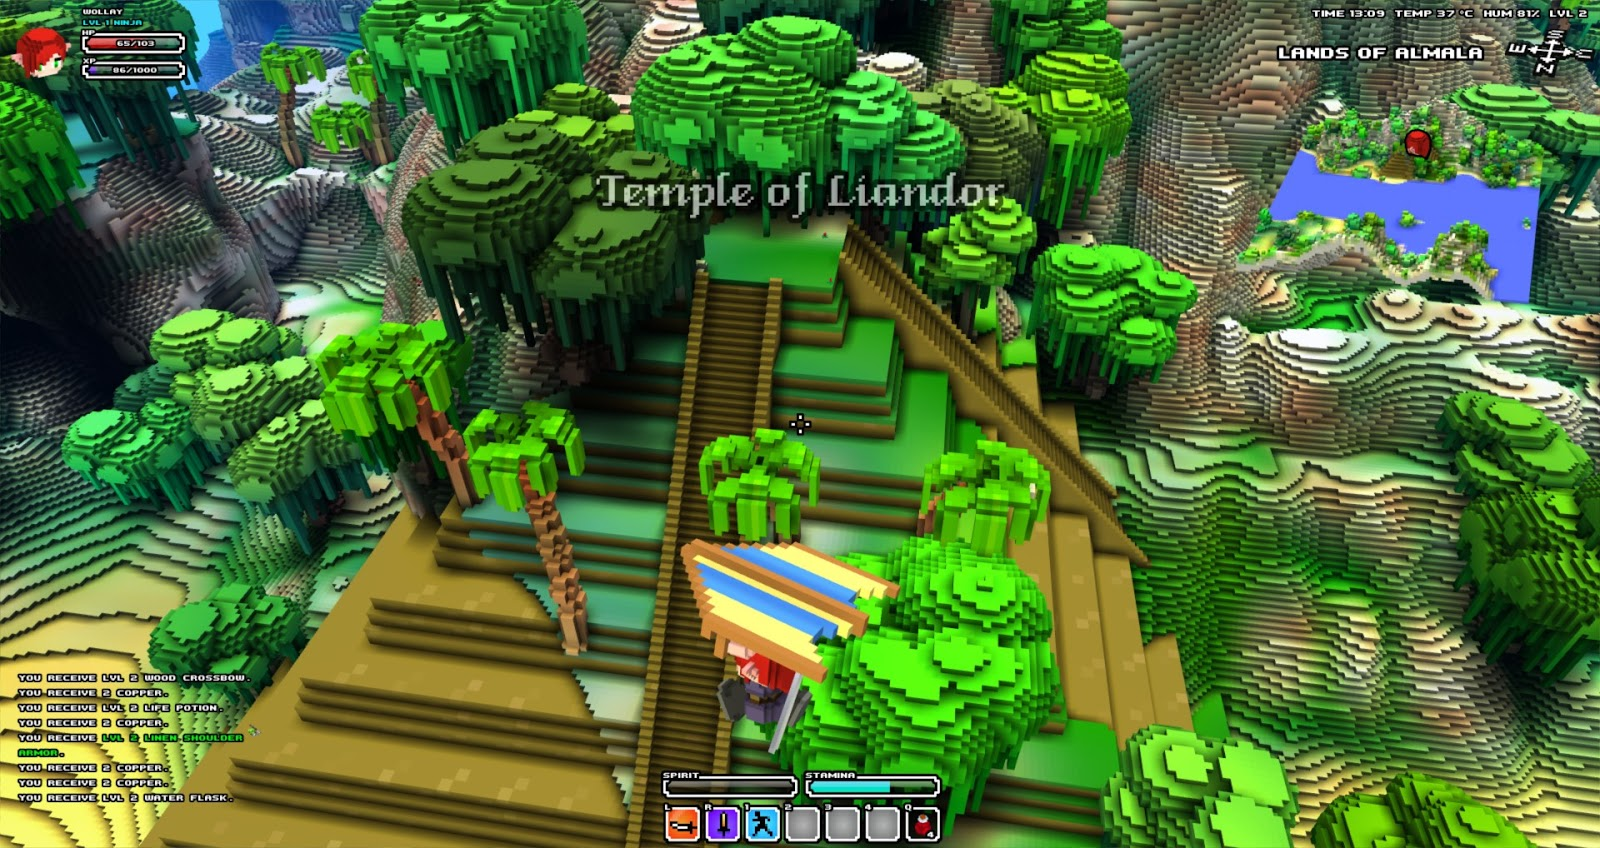 Wollays blog cube world landscape screenshots there are also some screenshots of the 3d world map which is automatically recorded while you explore the world its basically a big version of the gumiabroncs Gallery